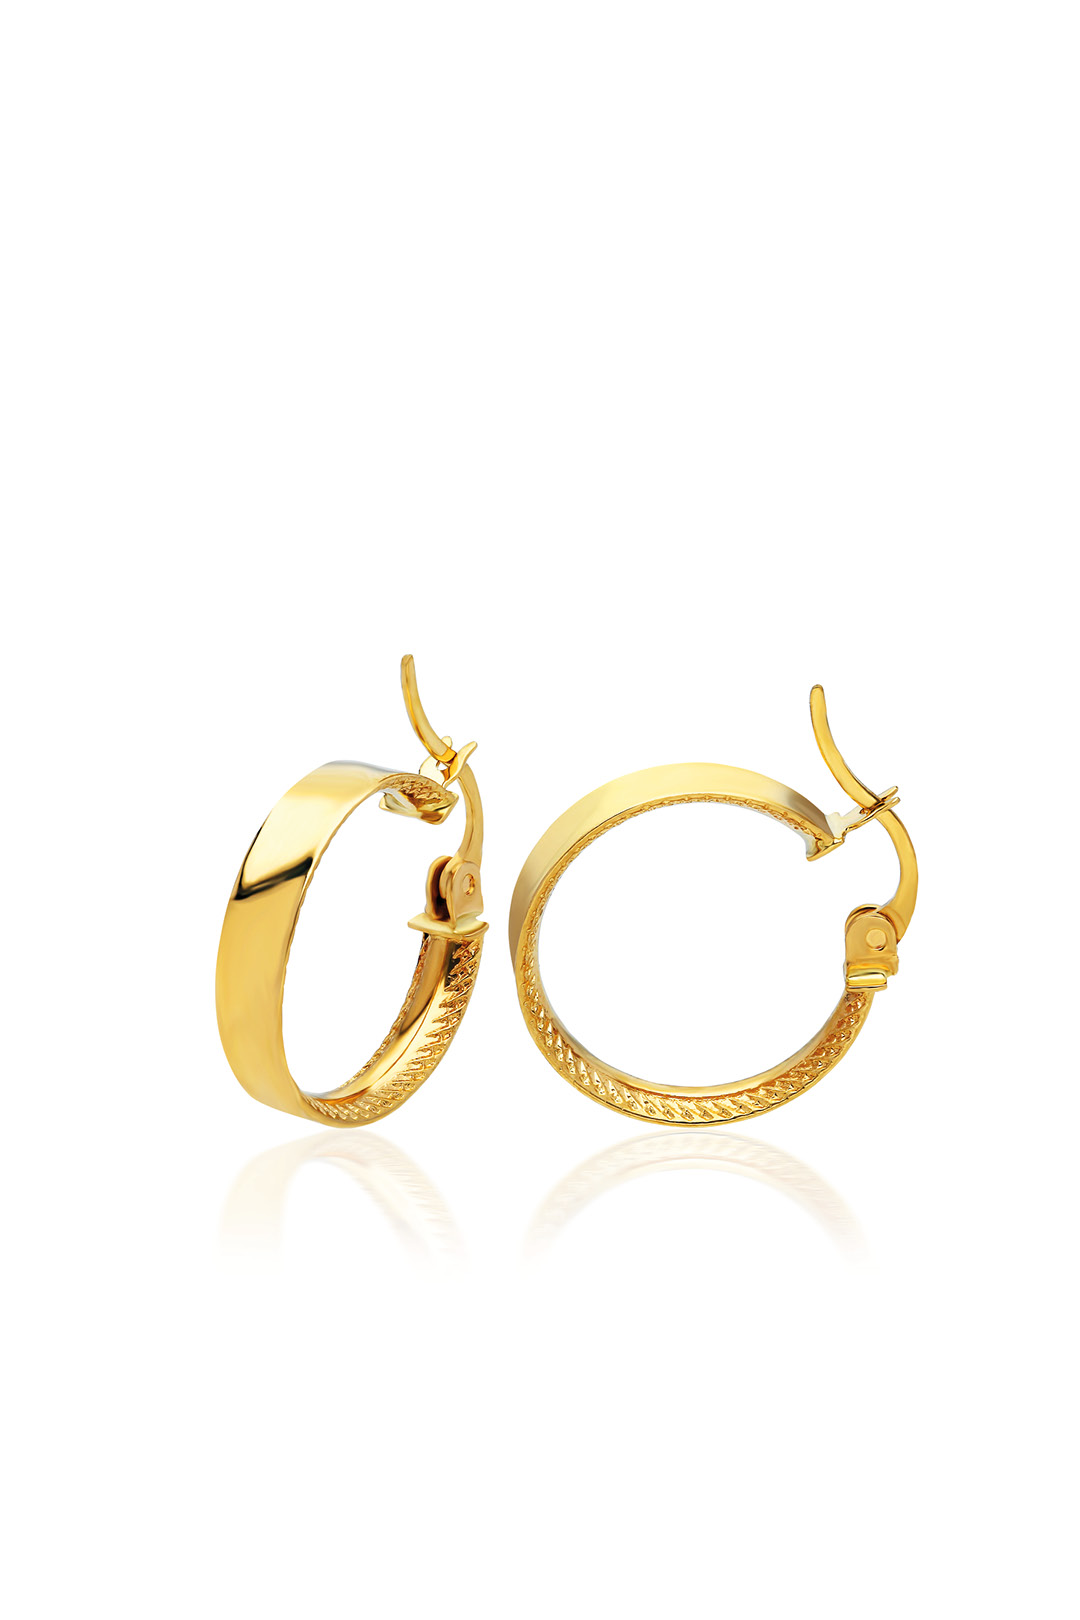 INNER MOTIVED THICK CIRCLE EARRING